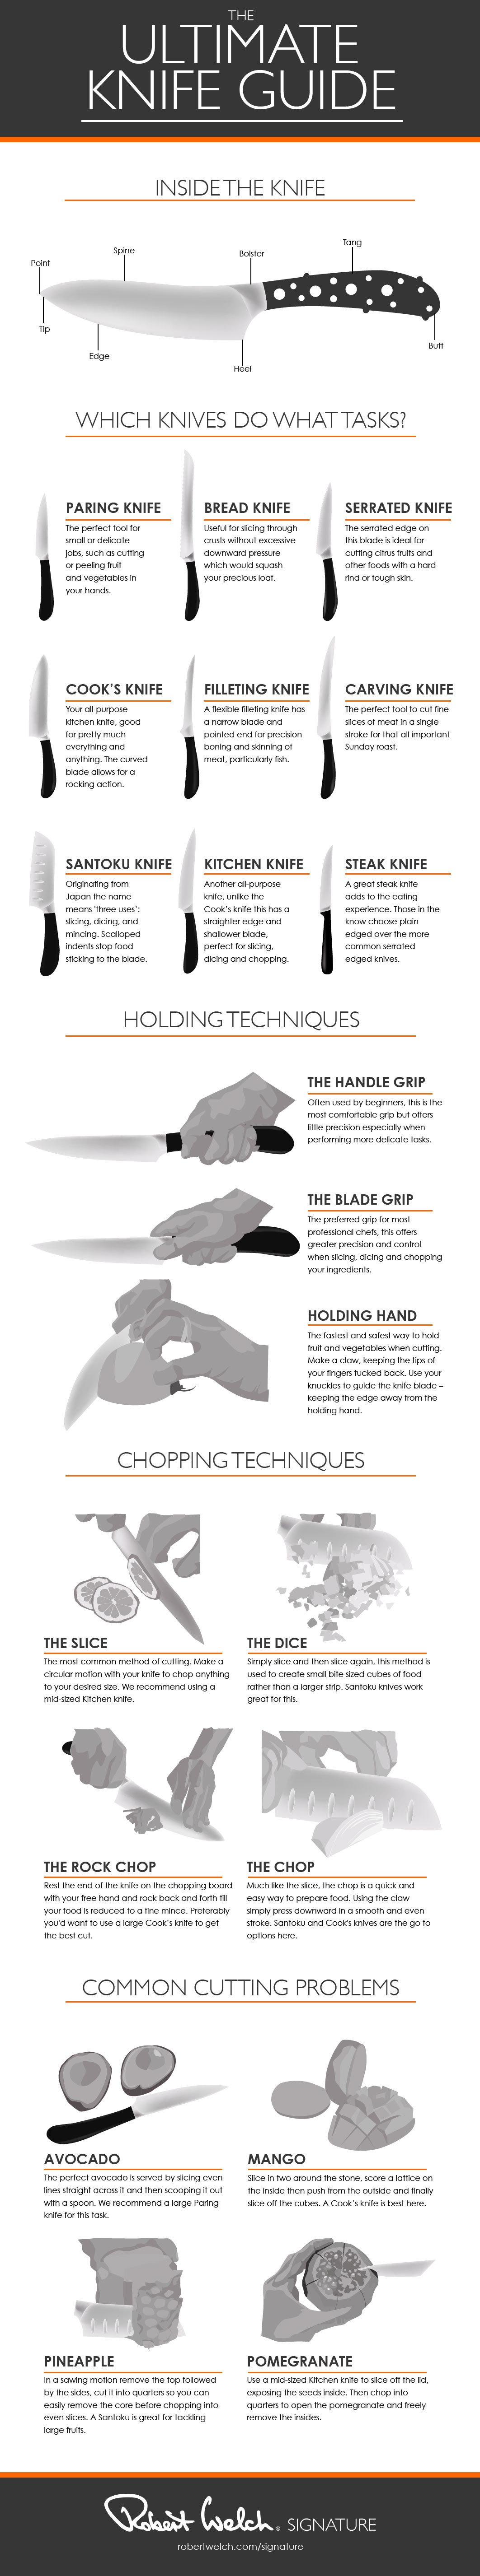 The Ultimate Knife Guide